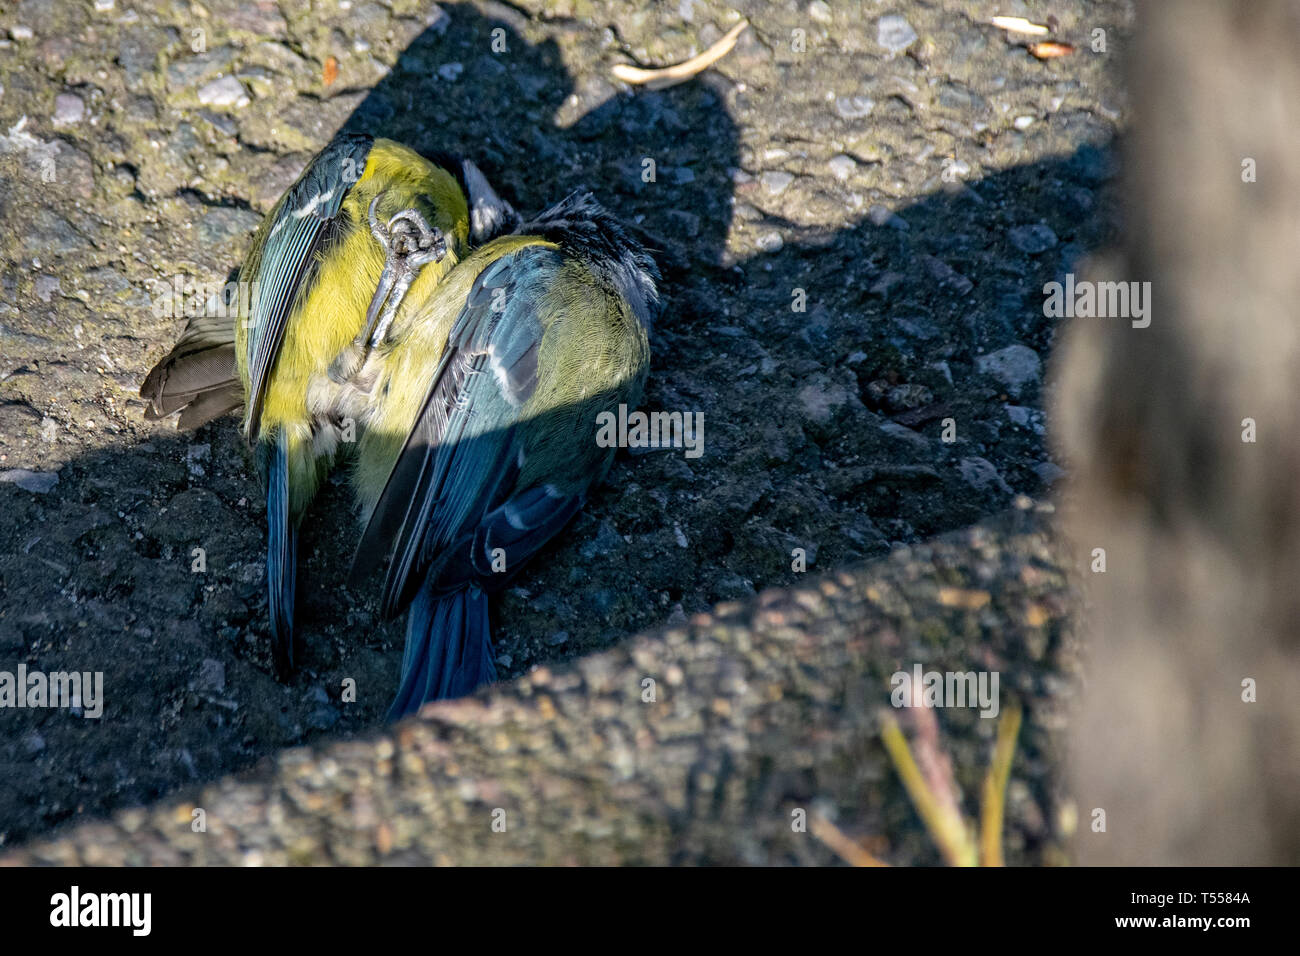 A pair of bluetit wild birds (Cyanistes caeruleus) on the ground mating in spring, Clacton on Sea, Essex, UK Stock Photo